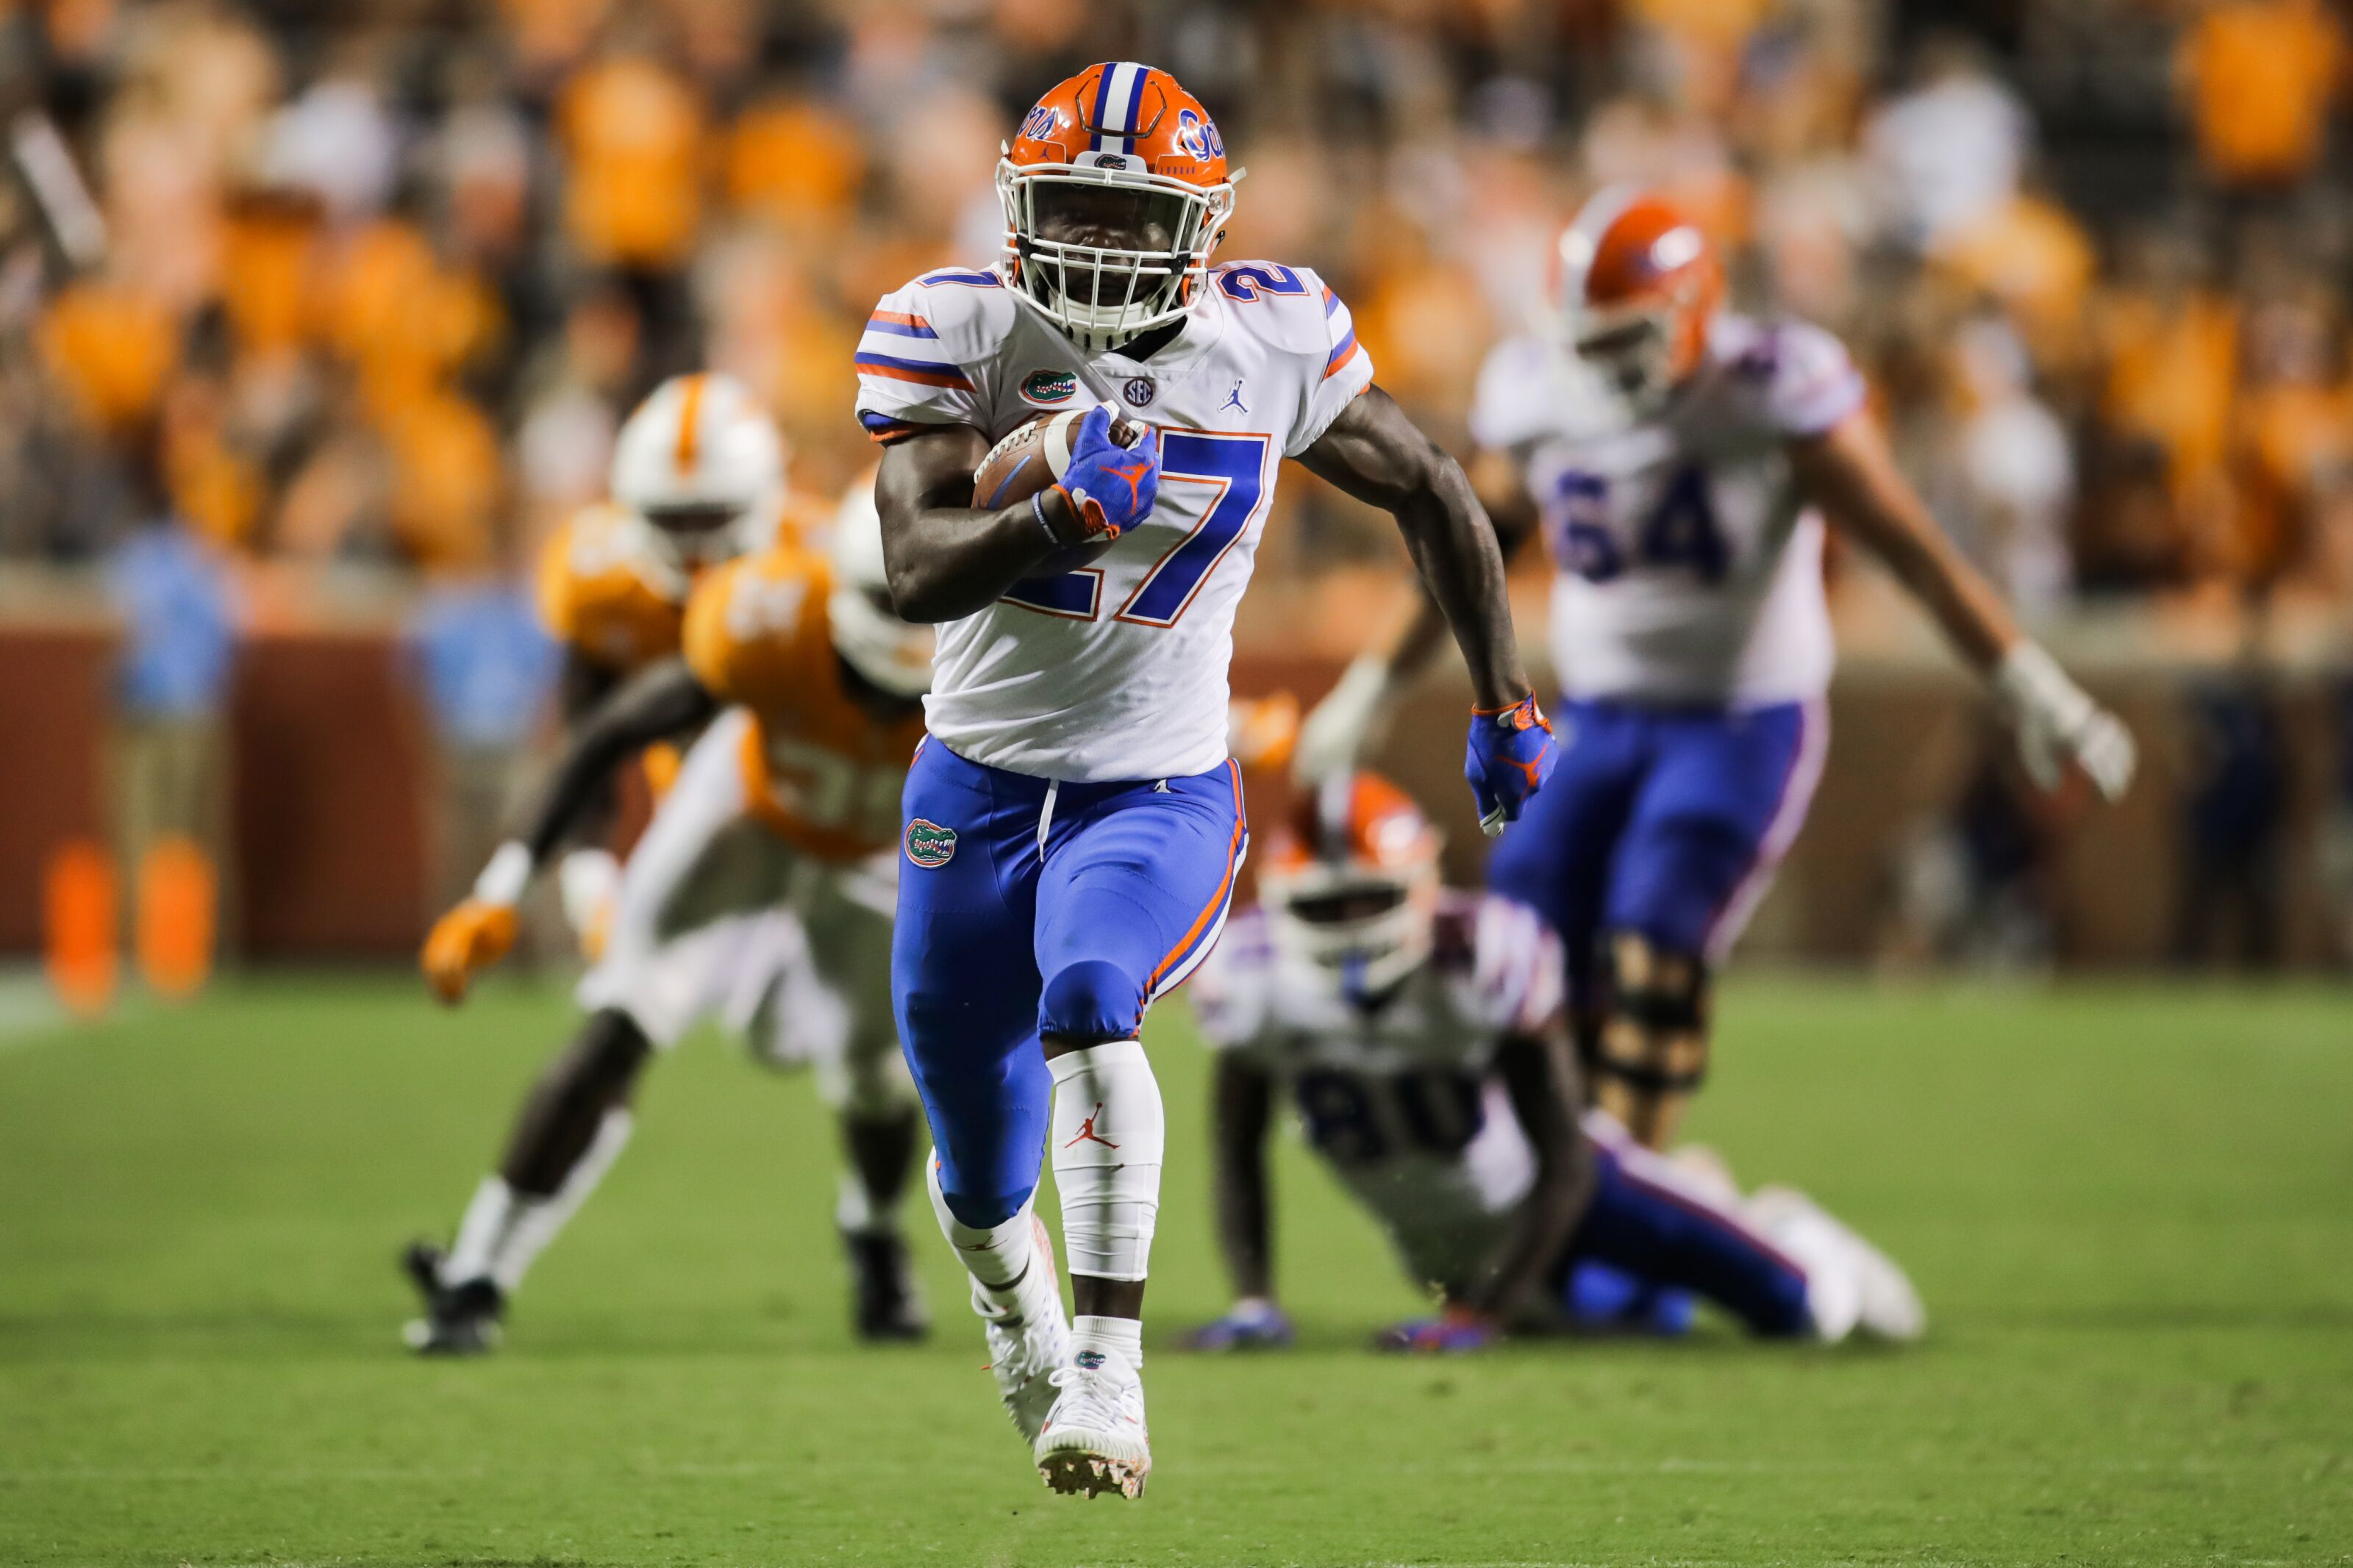 Tennessee Football Vols Gators Isn T A Close Rivalry And Never Has Been